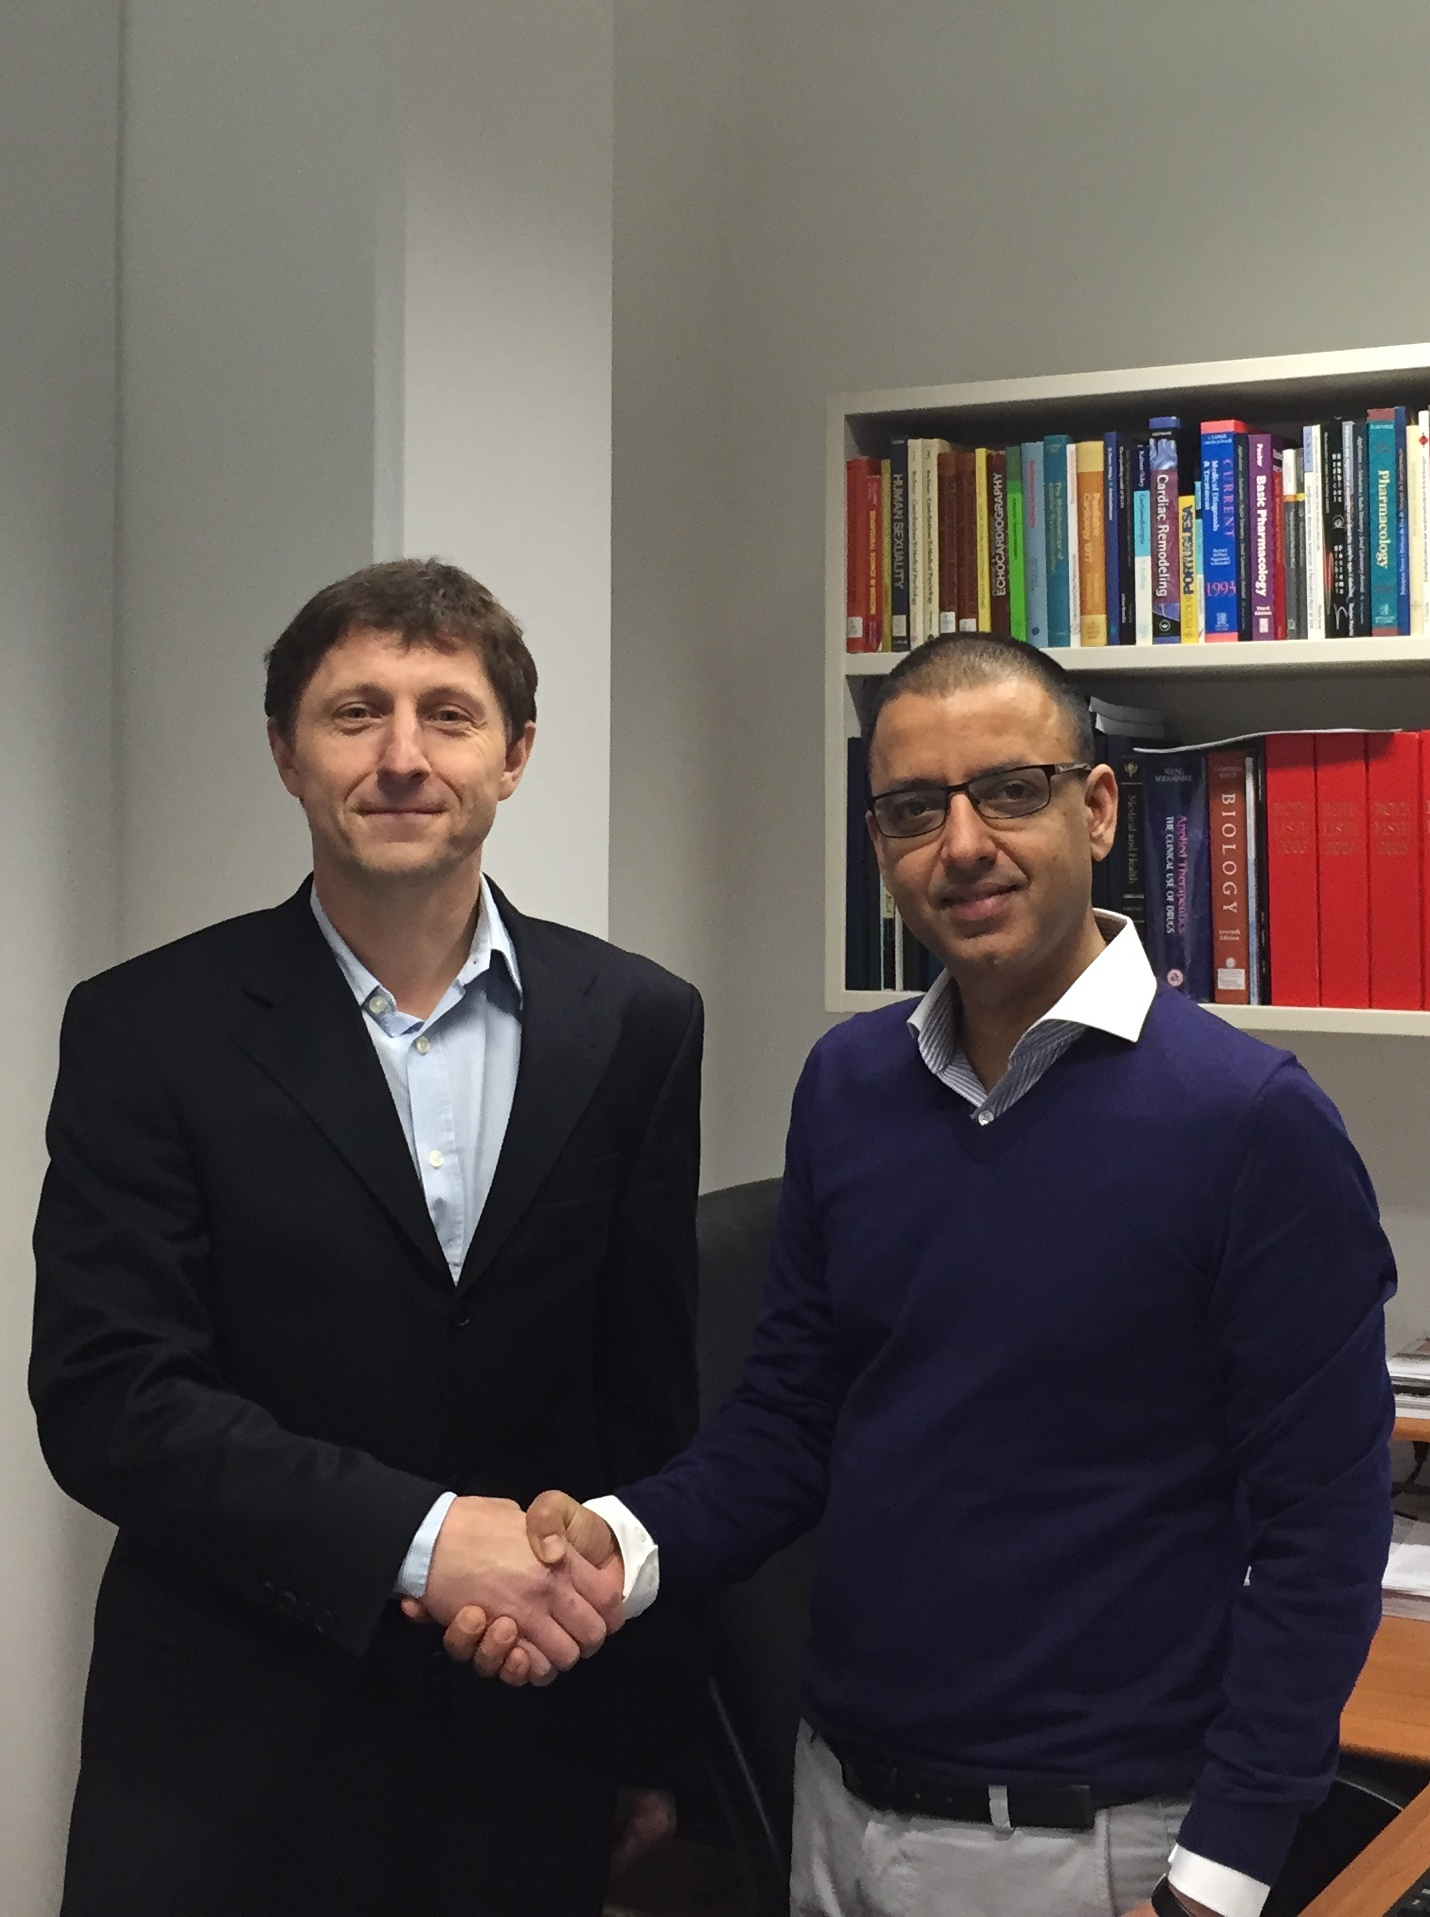 Newly appointed lecturer is welcomed by Professor Thomas Walther